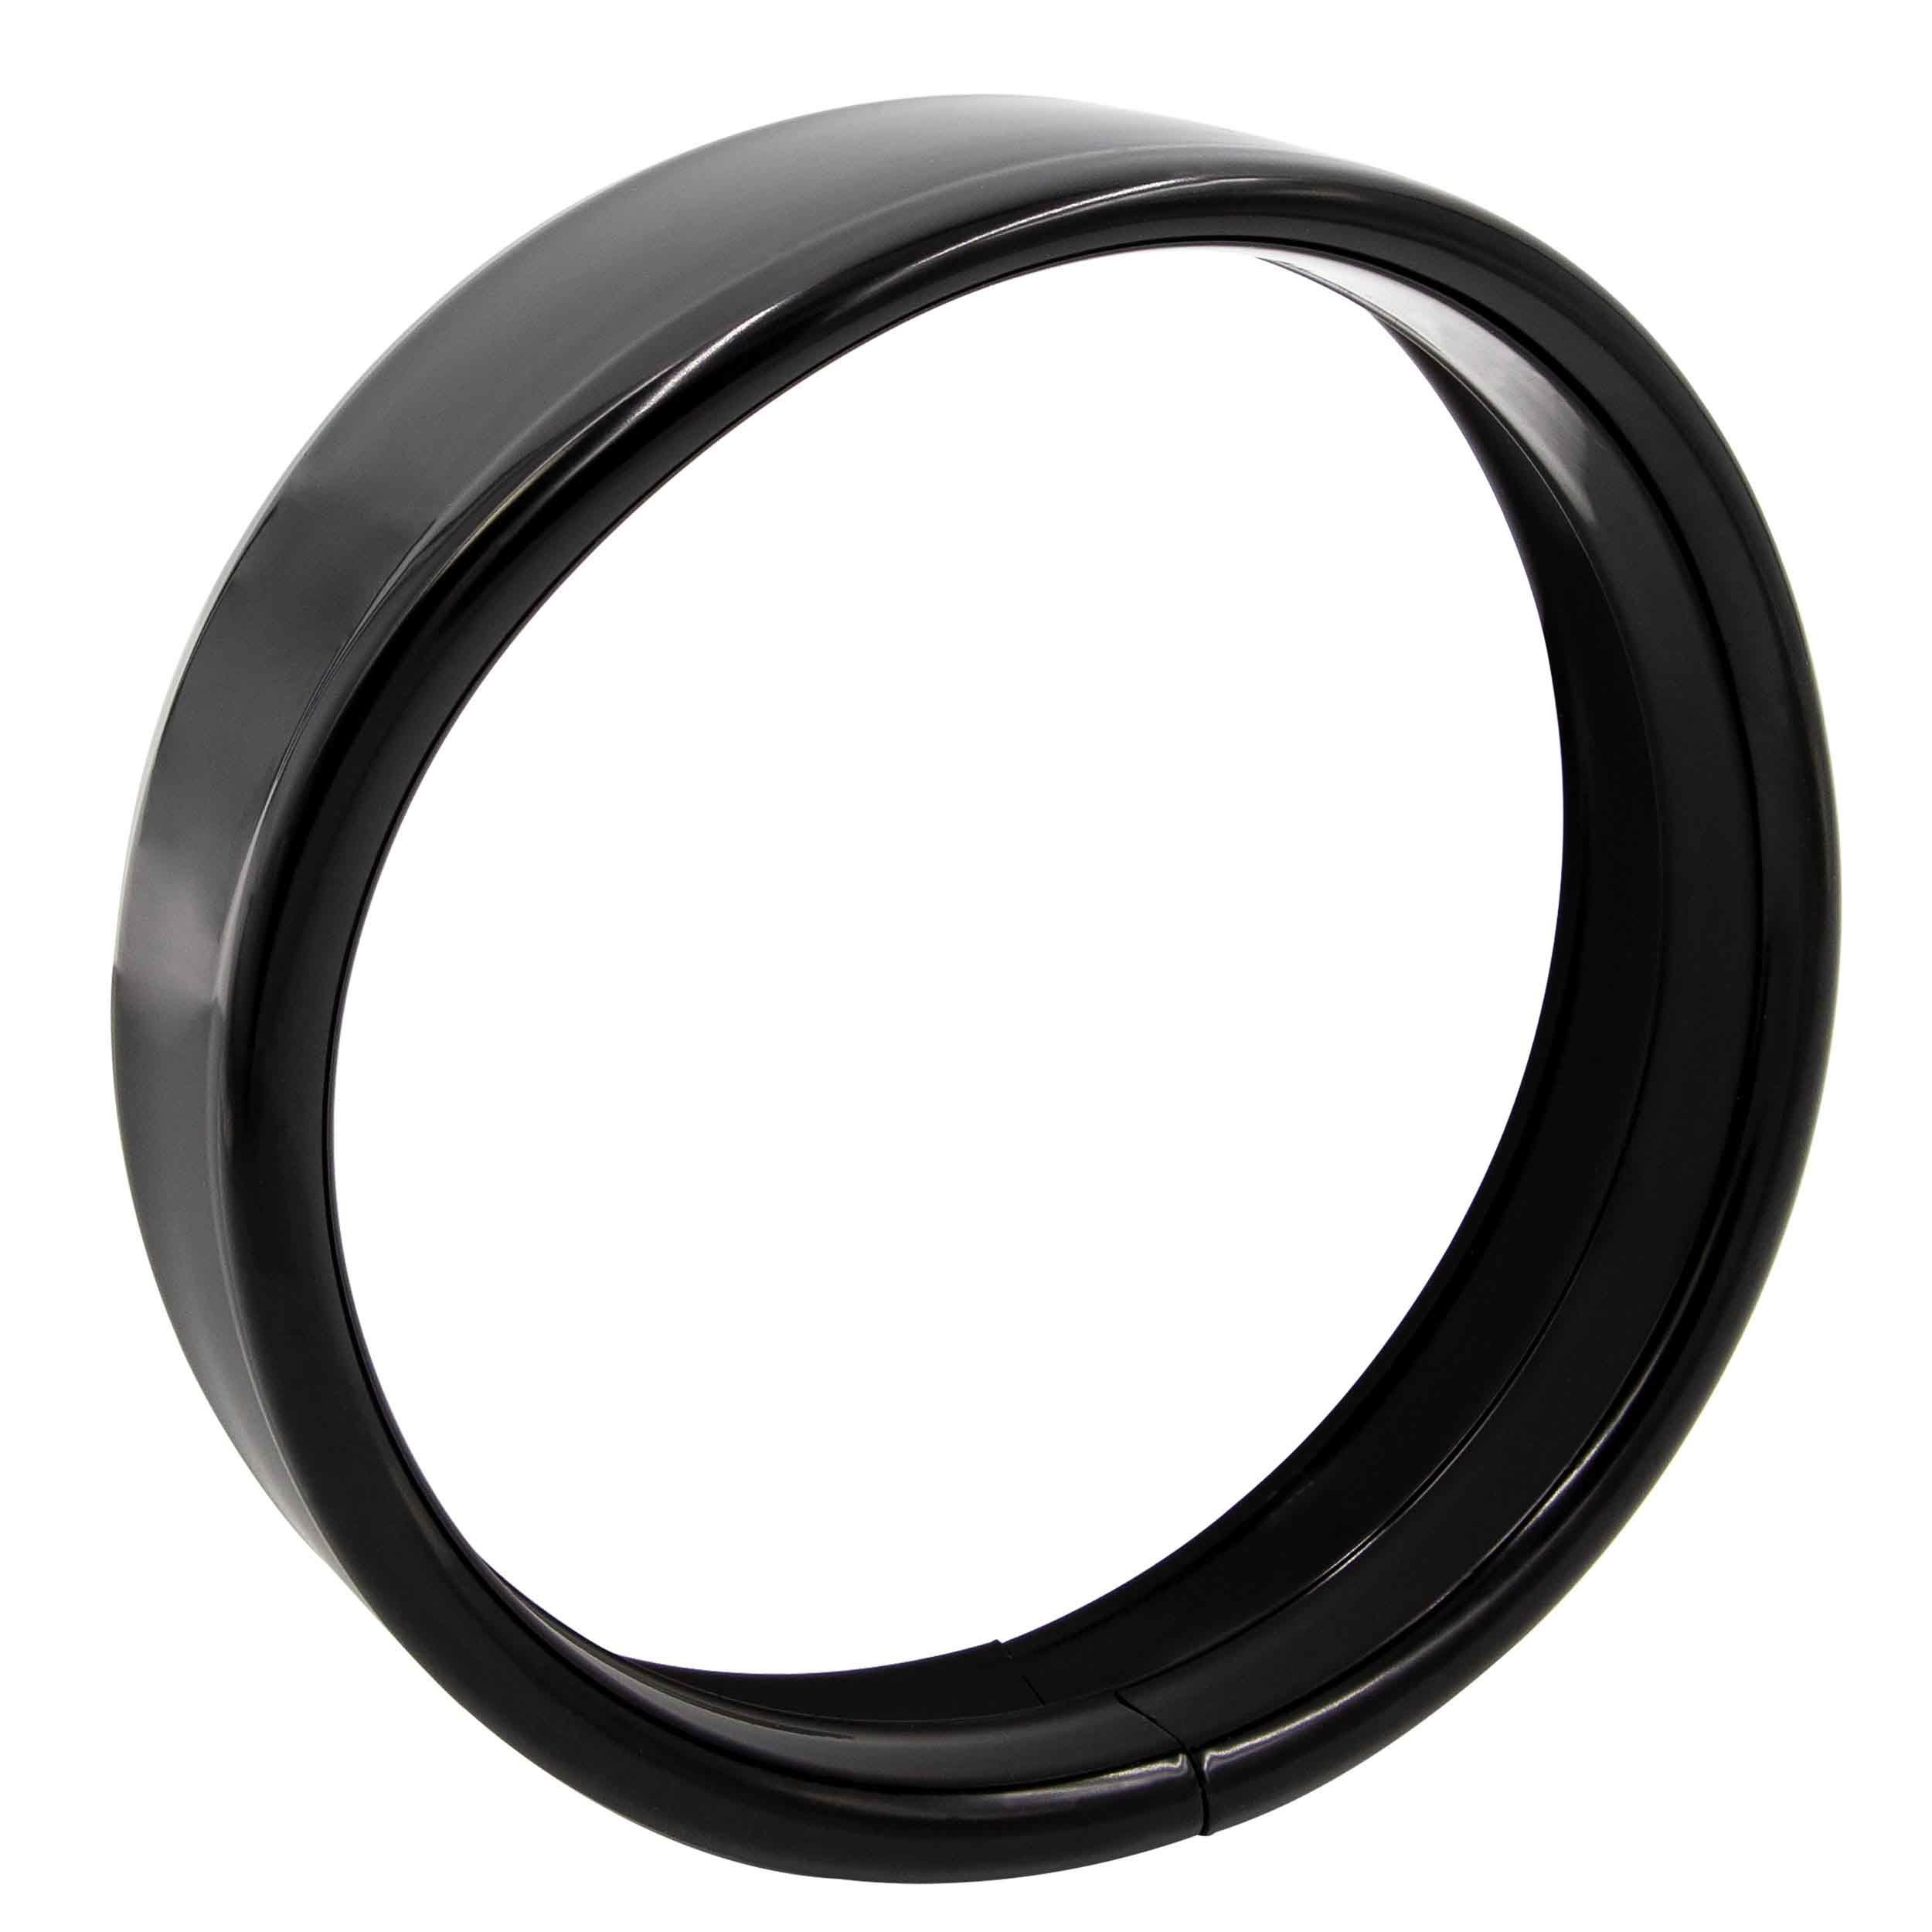 Black Visor Style Light Trim Ring - 5.75 Inch, Harley Davidson 1994-2016